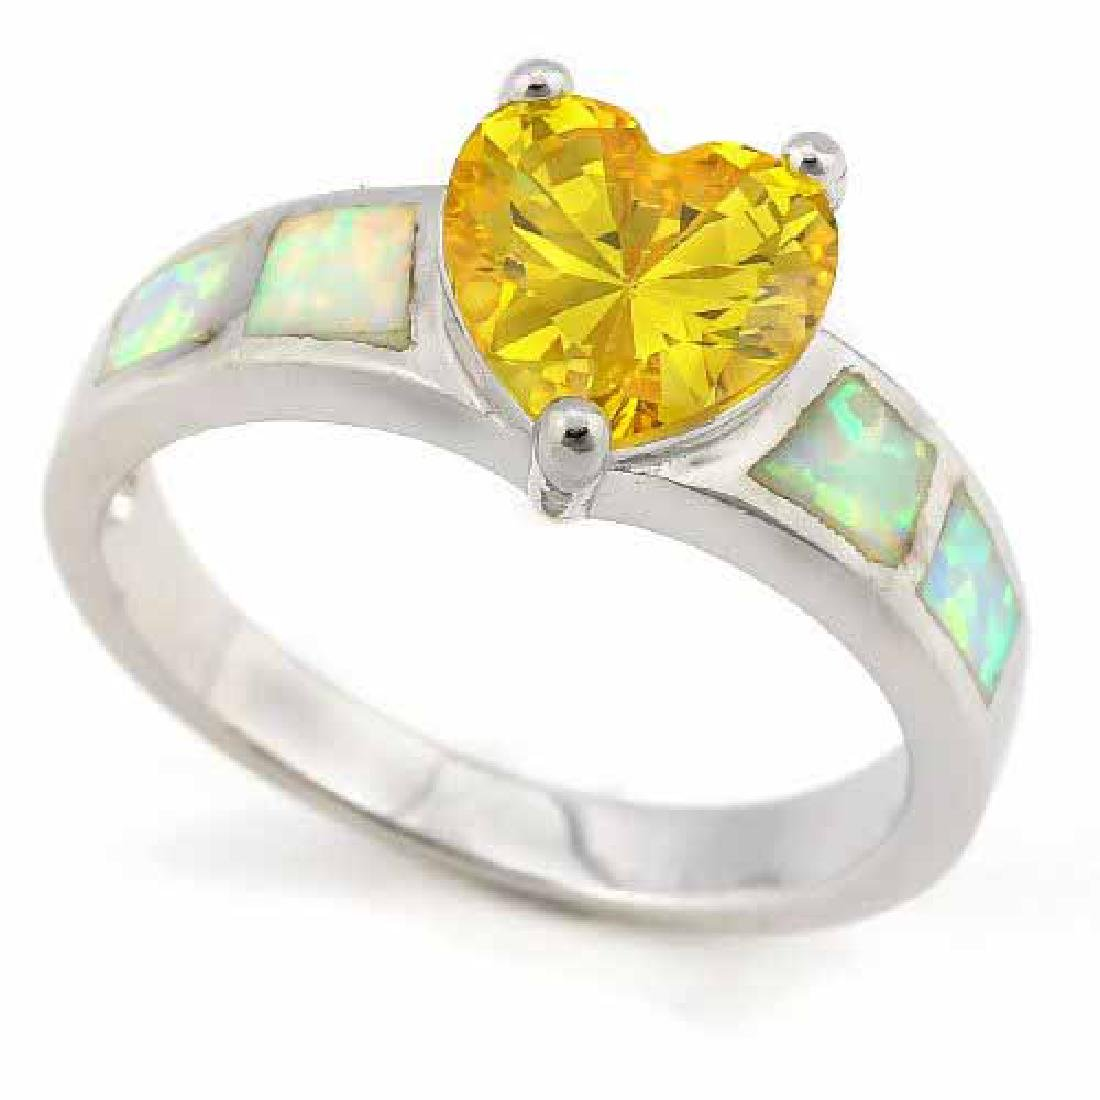 3 CARAT CREATED YELLOW SAPPHIRE & 1 CARAT CREATED FIRE